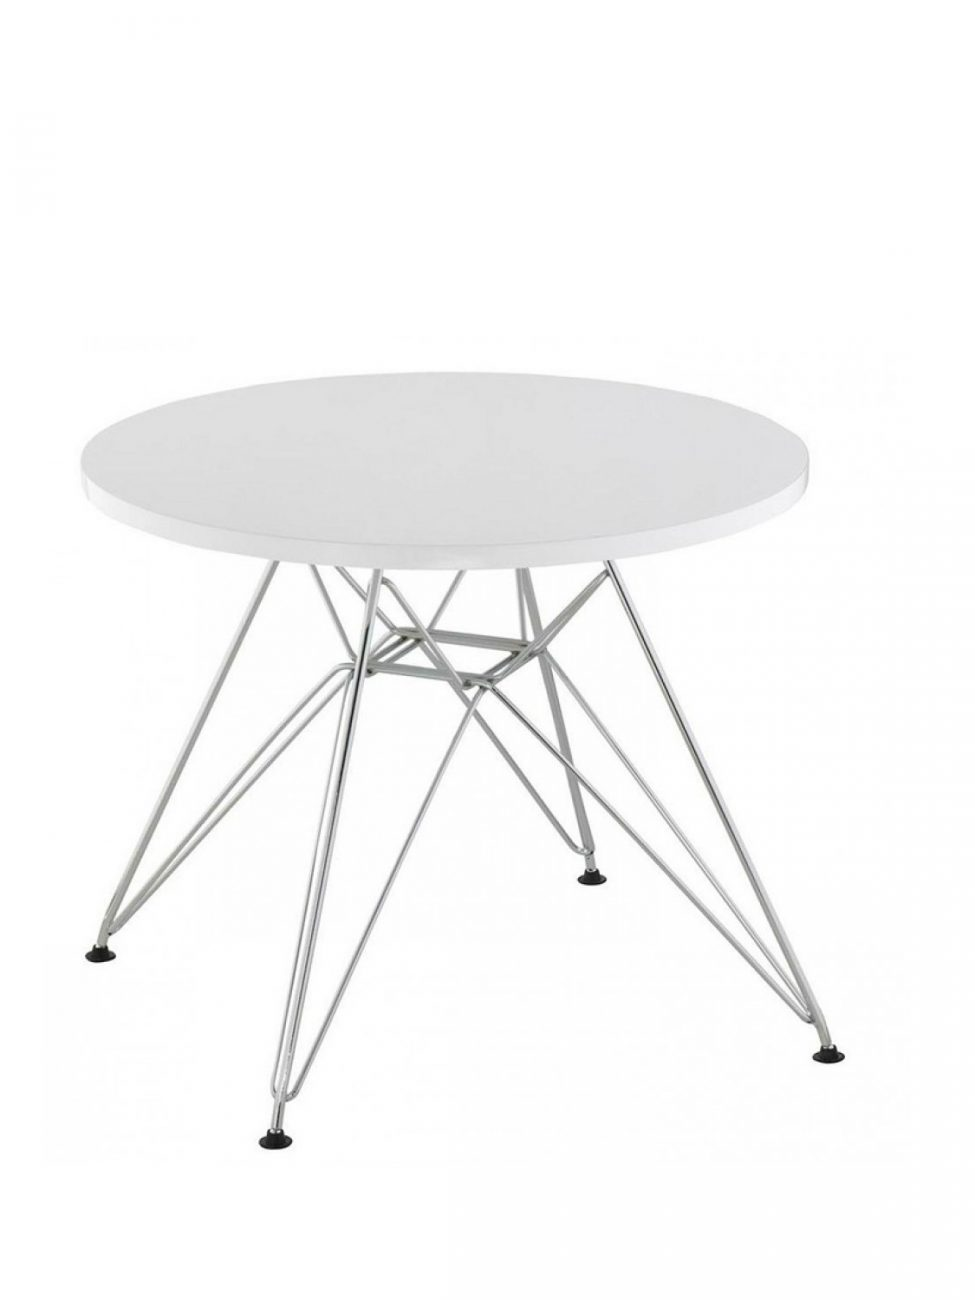 Eiffel kids Table (Chrome legs) web